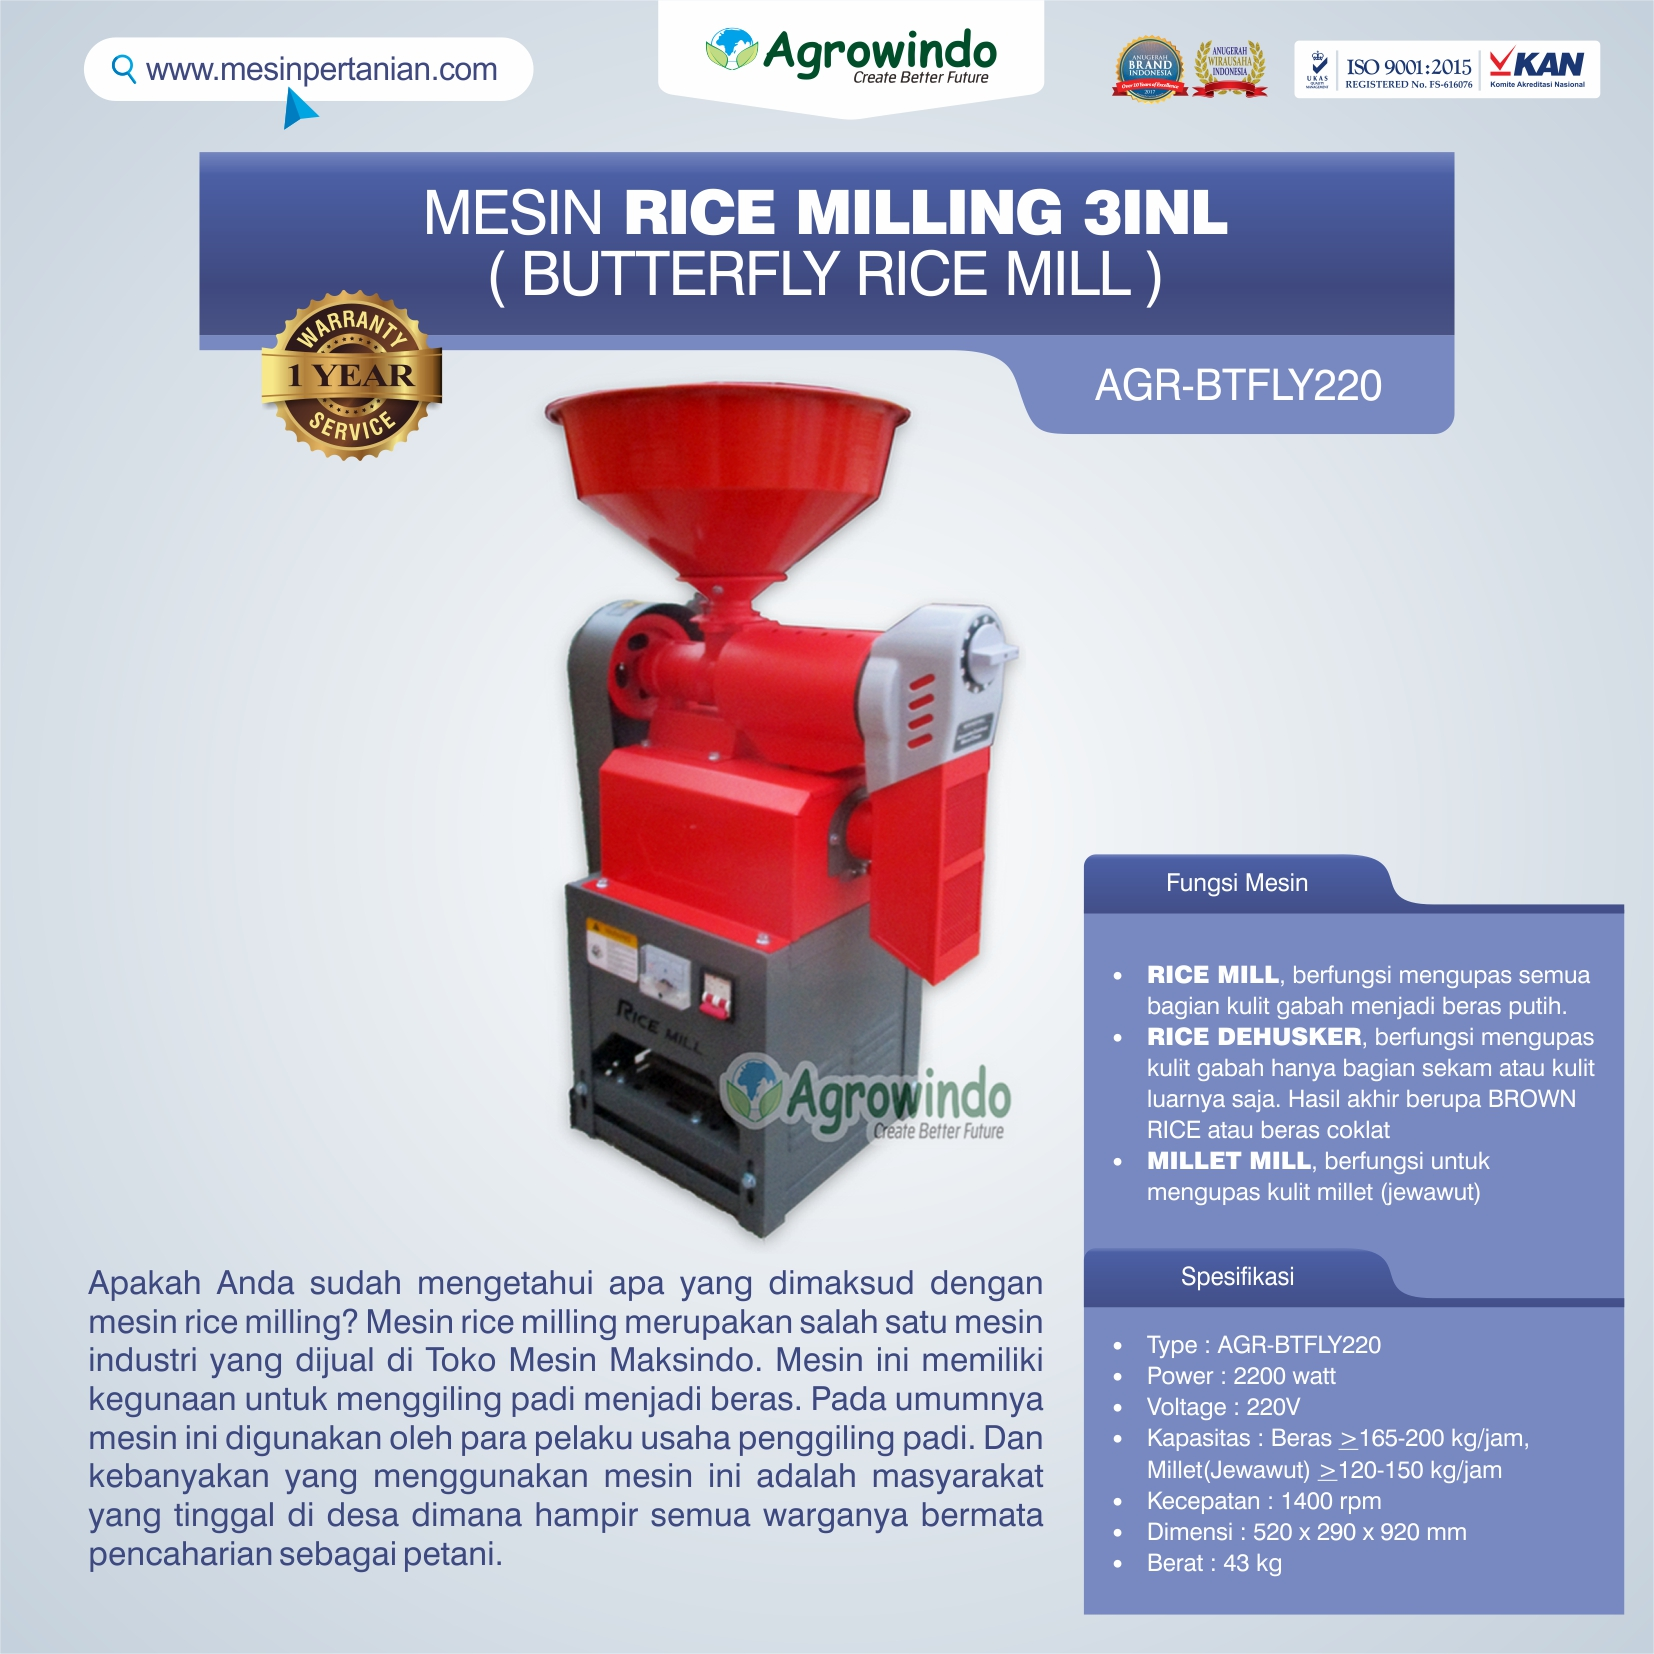 Jual Mesin Rice Milling 3in1 (Butterfly Rice Mill) AGR-BTFLY220 di Tangerang